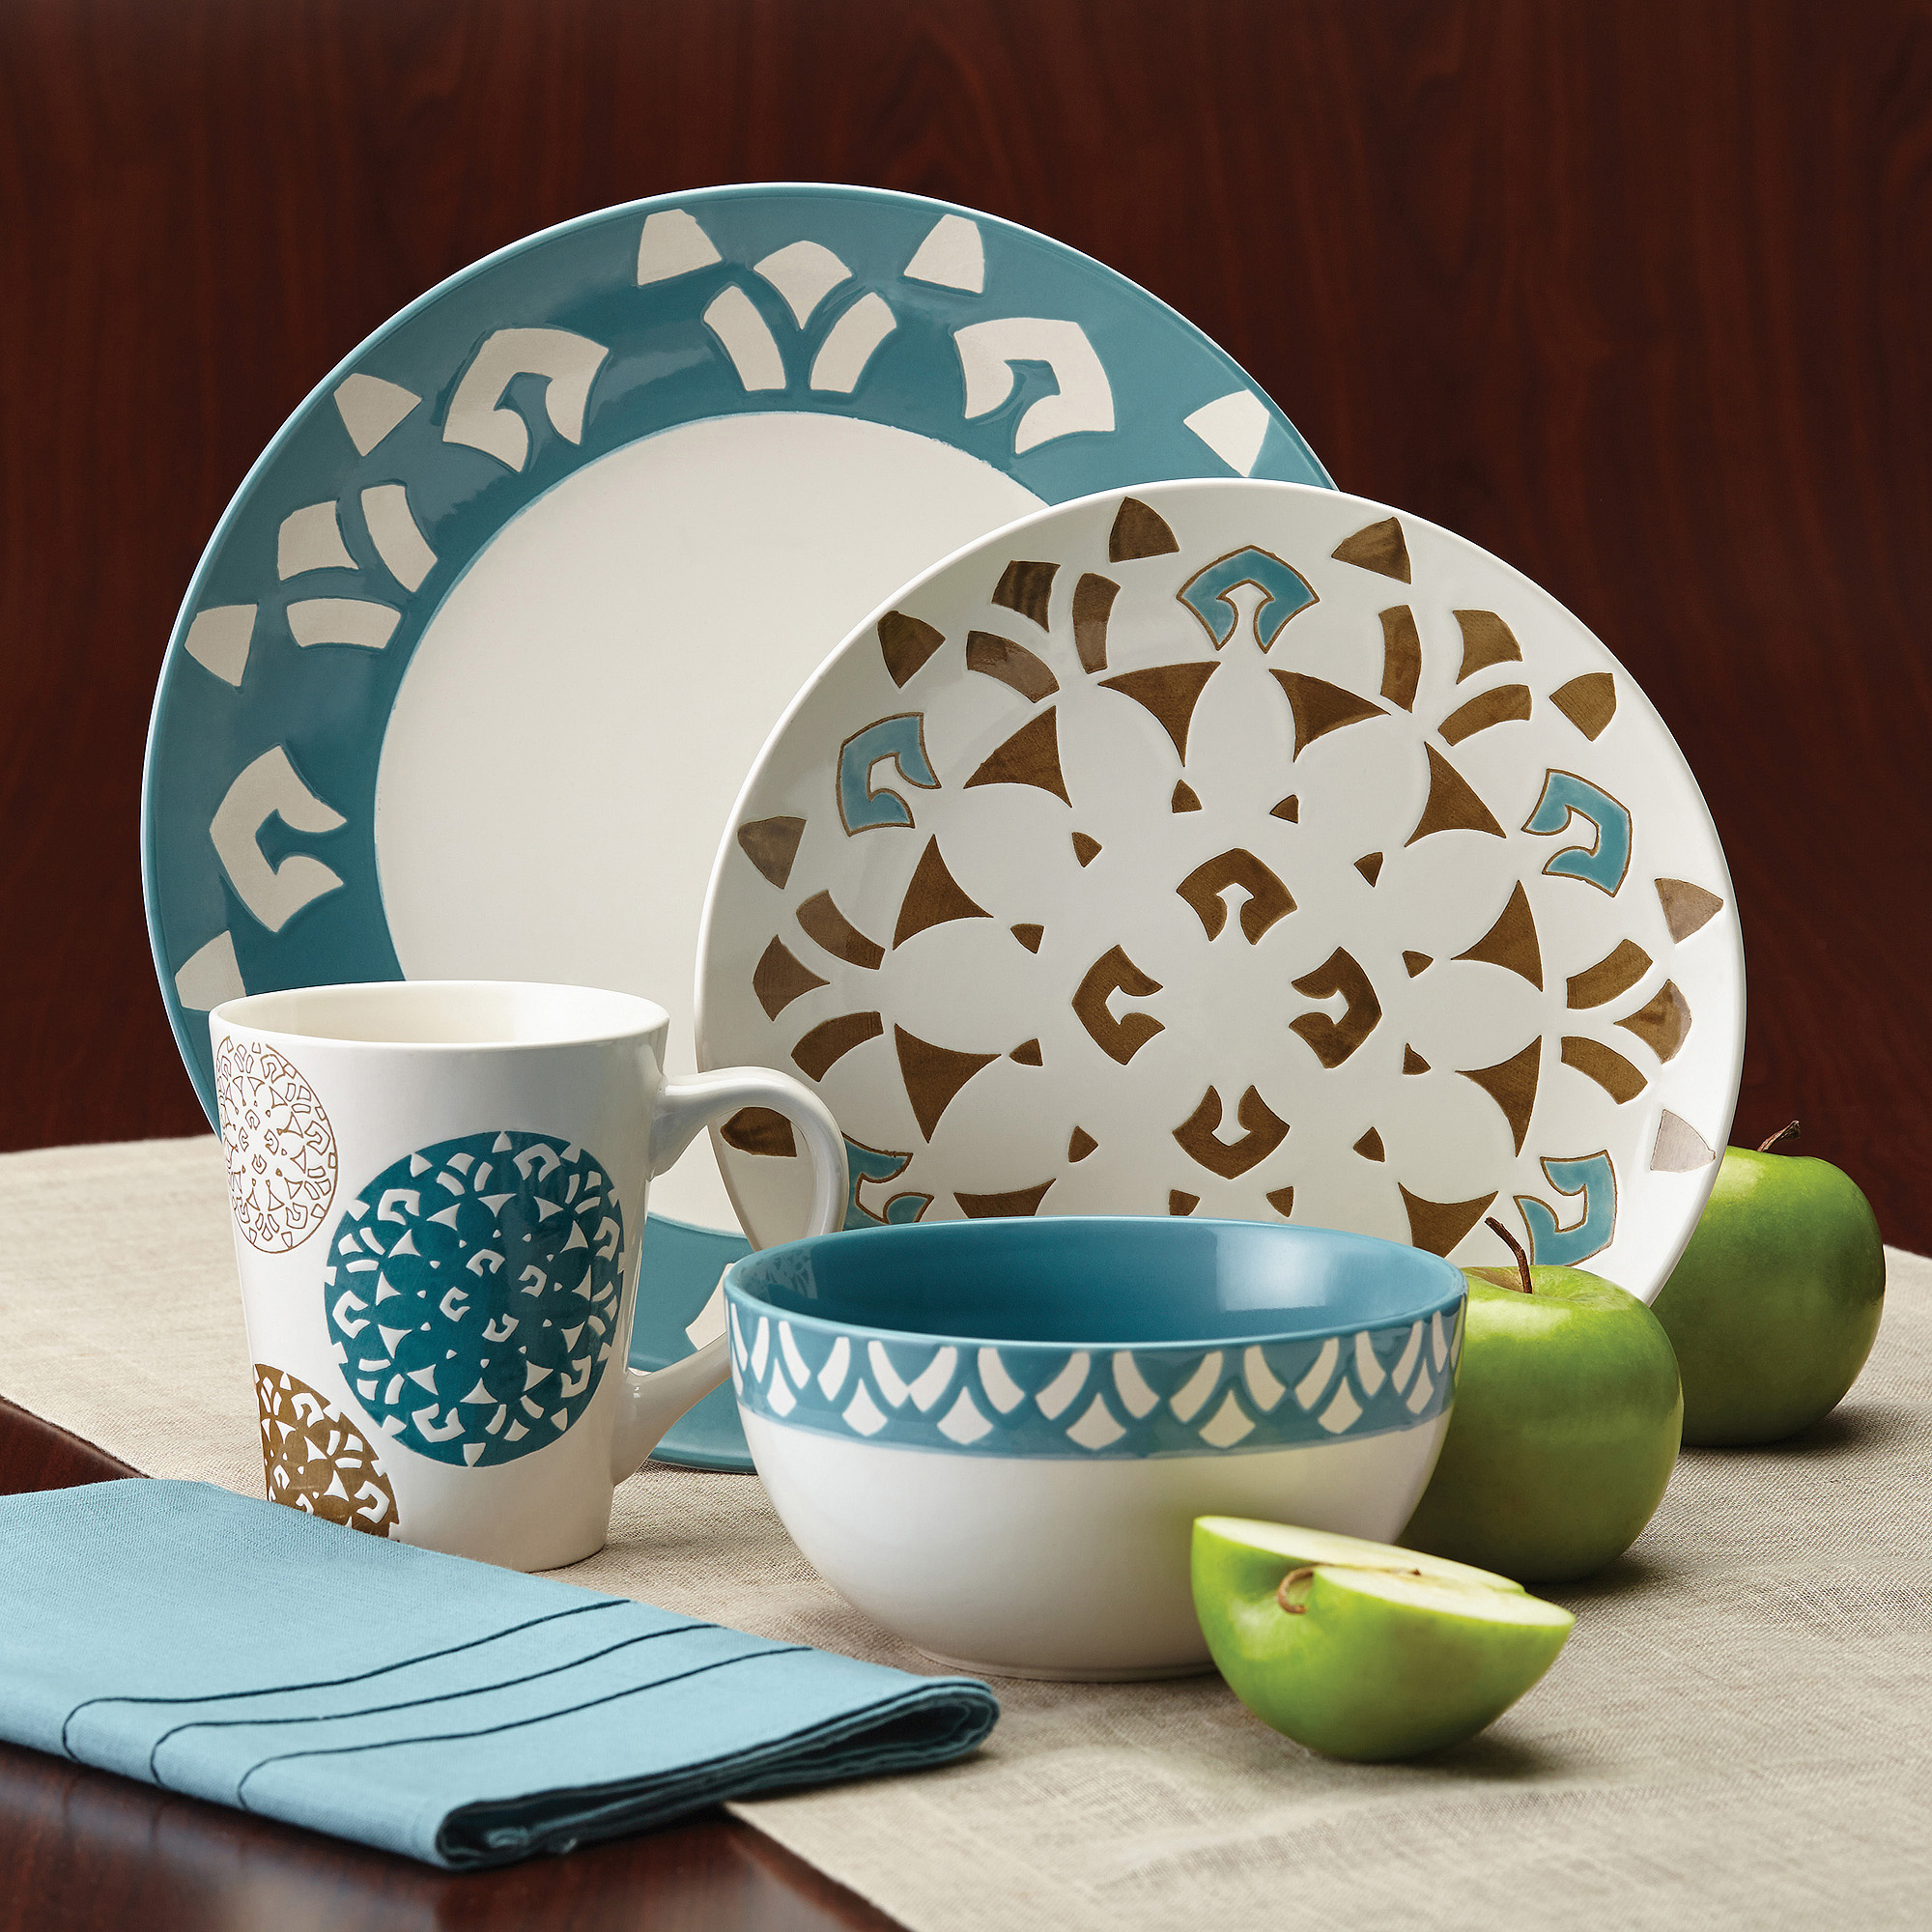 Stoneware Dinnerware Sets | Porcelain Dinnerware Sets | Stoneware Dishes